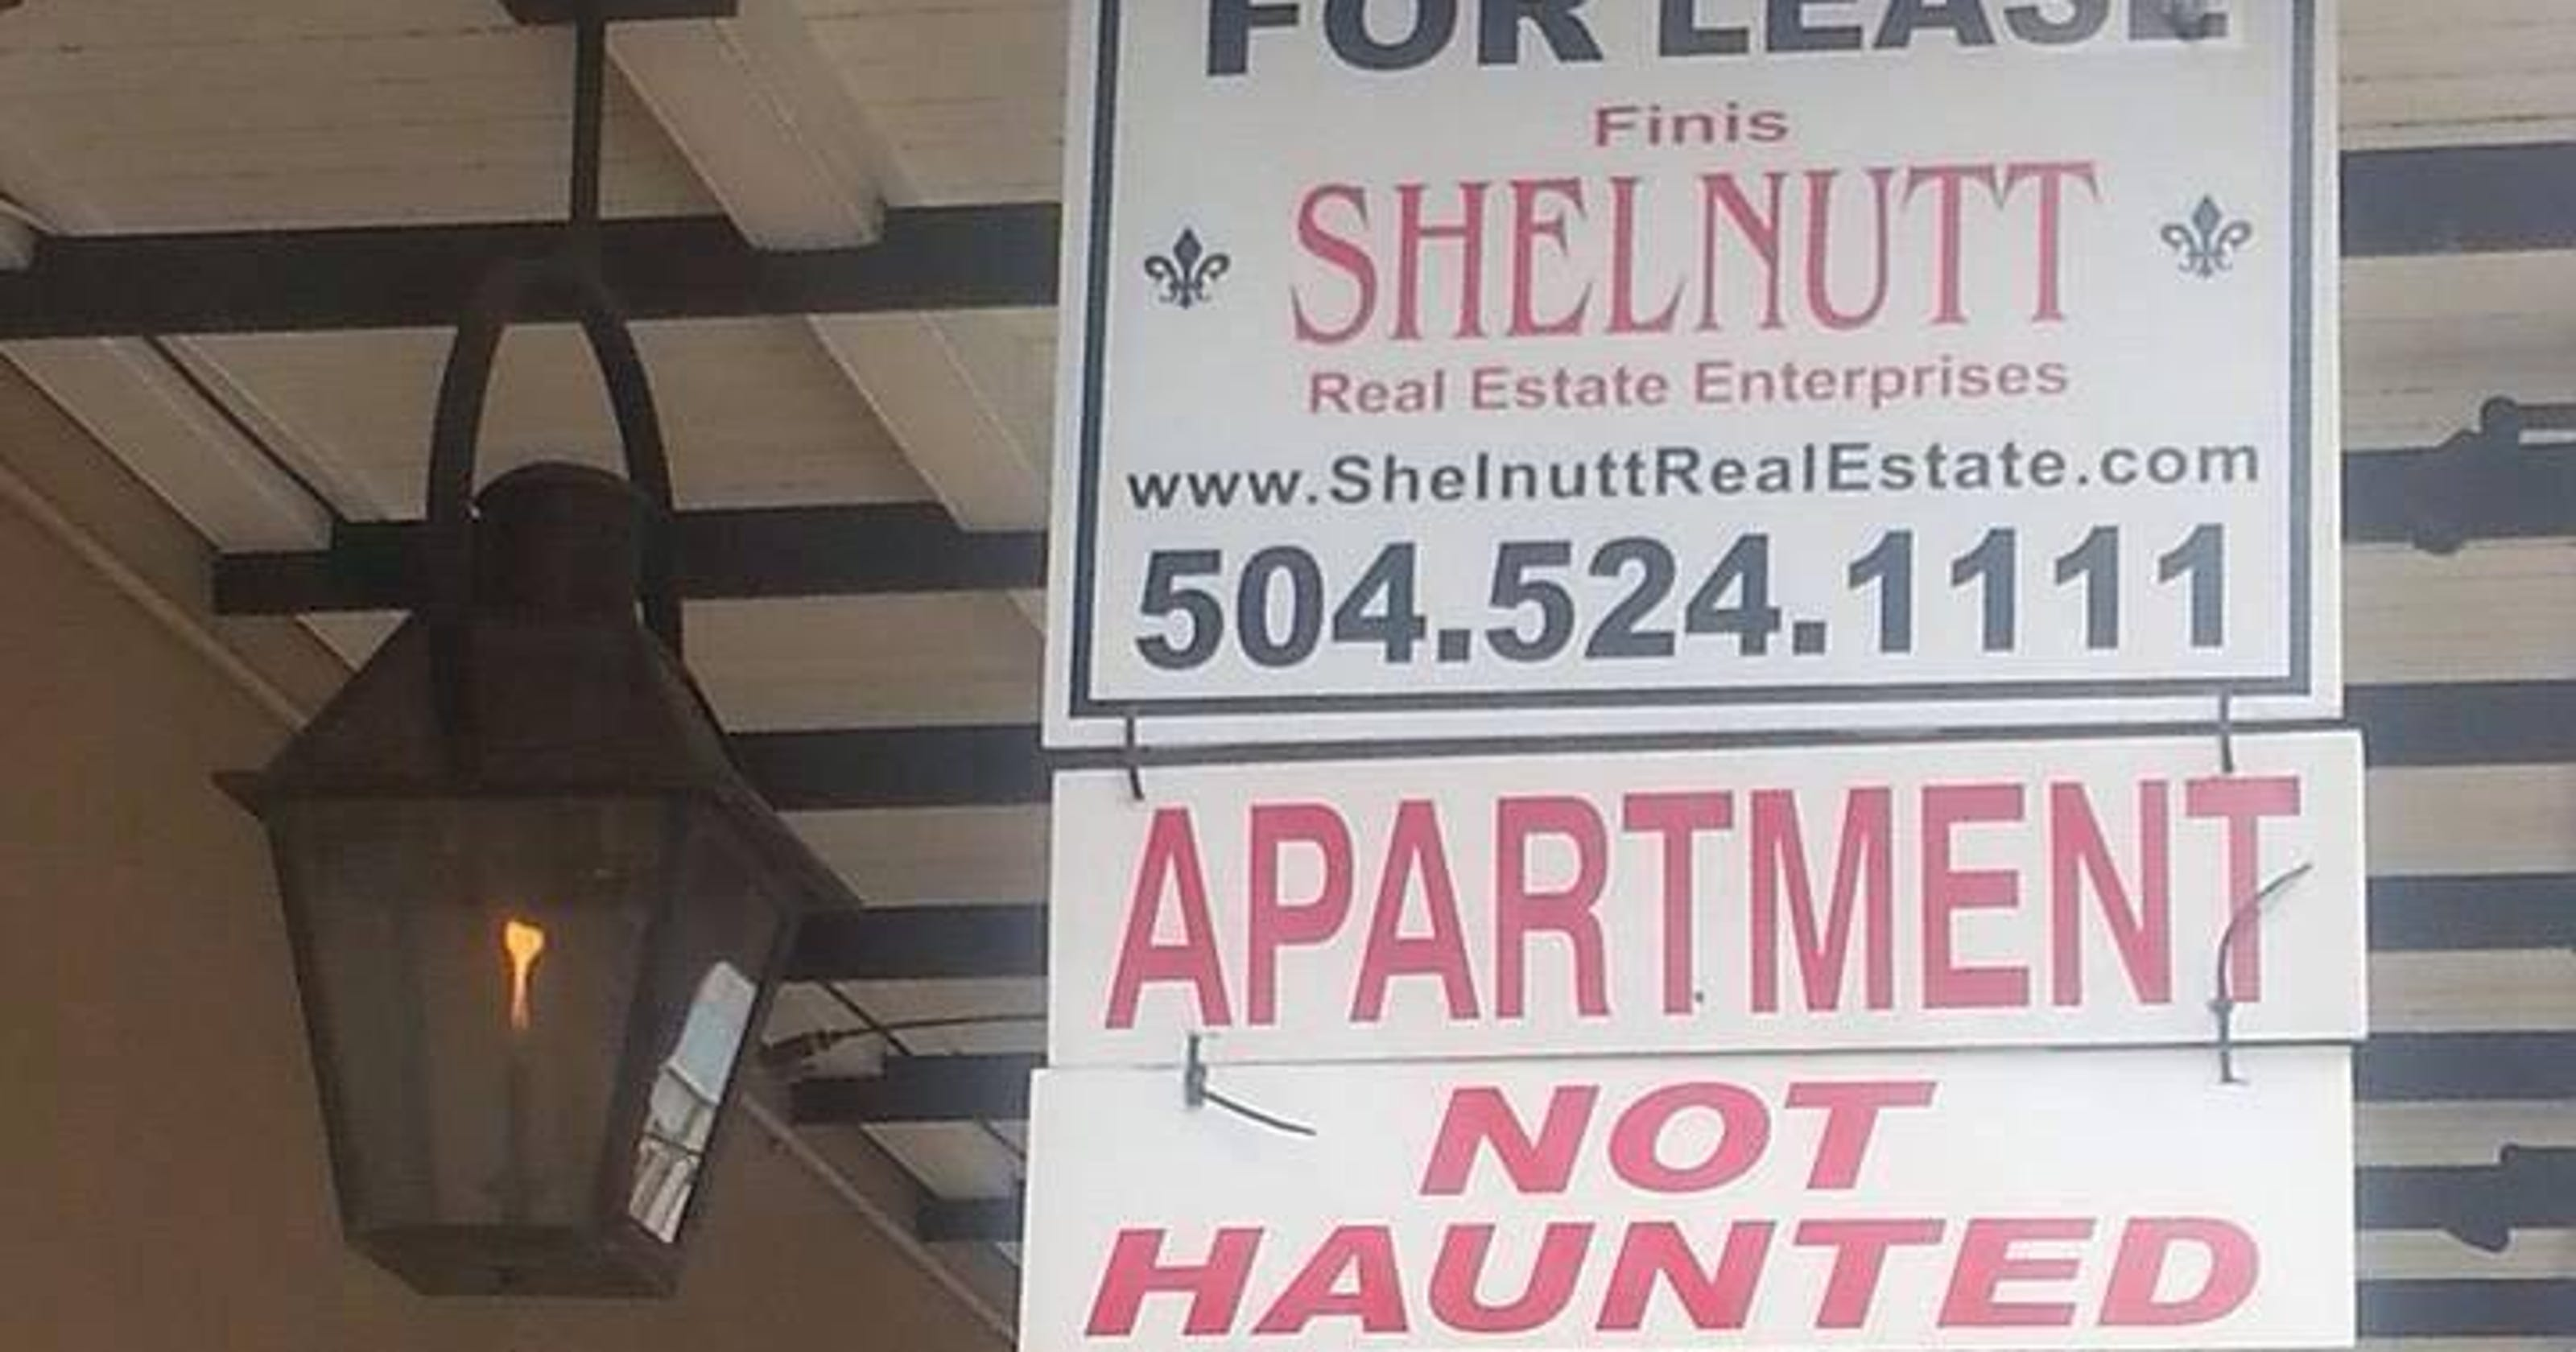 Real estate ghost writing service